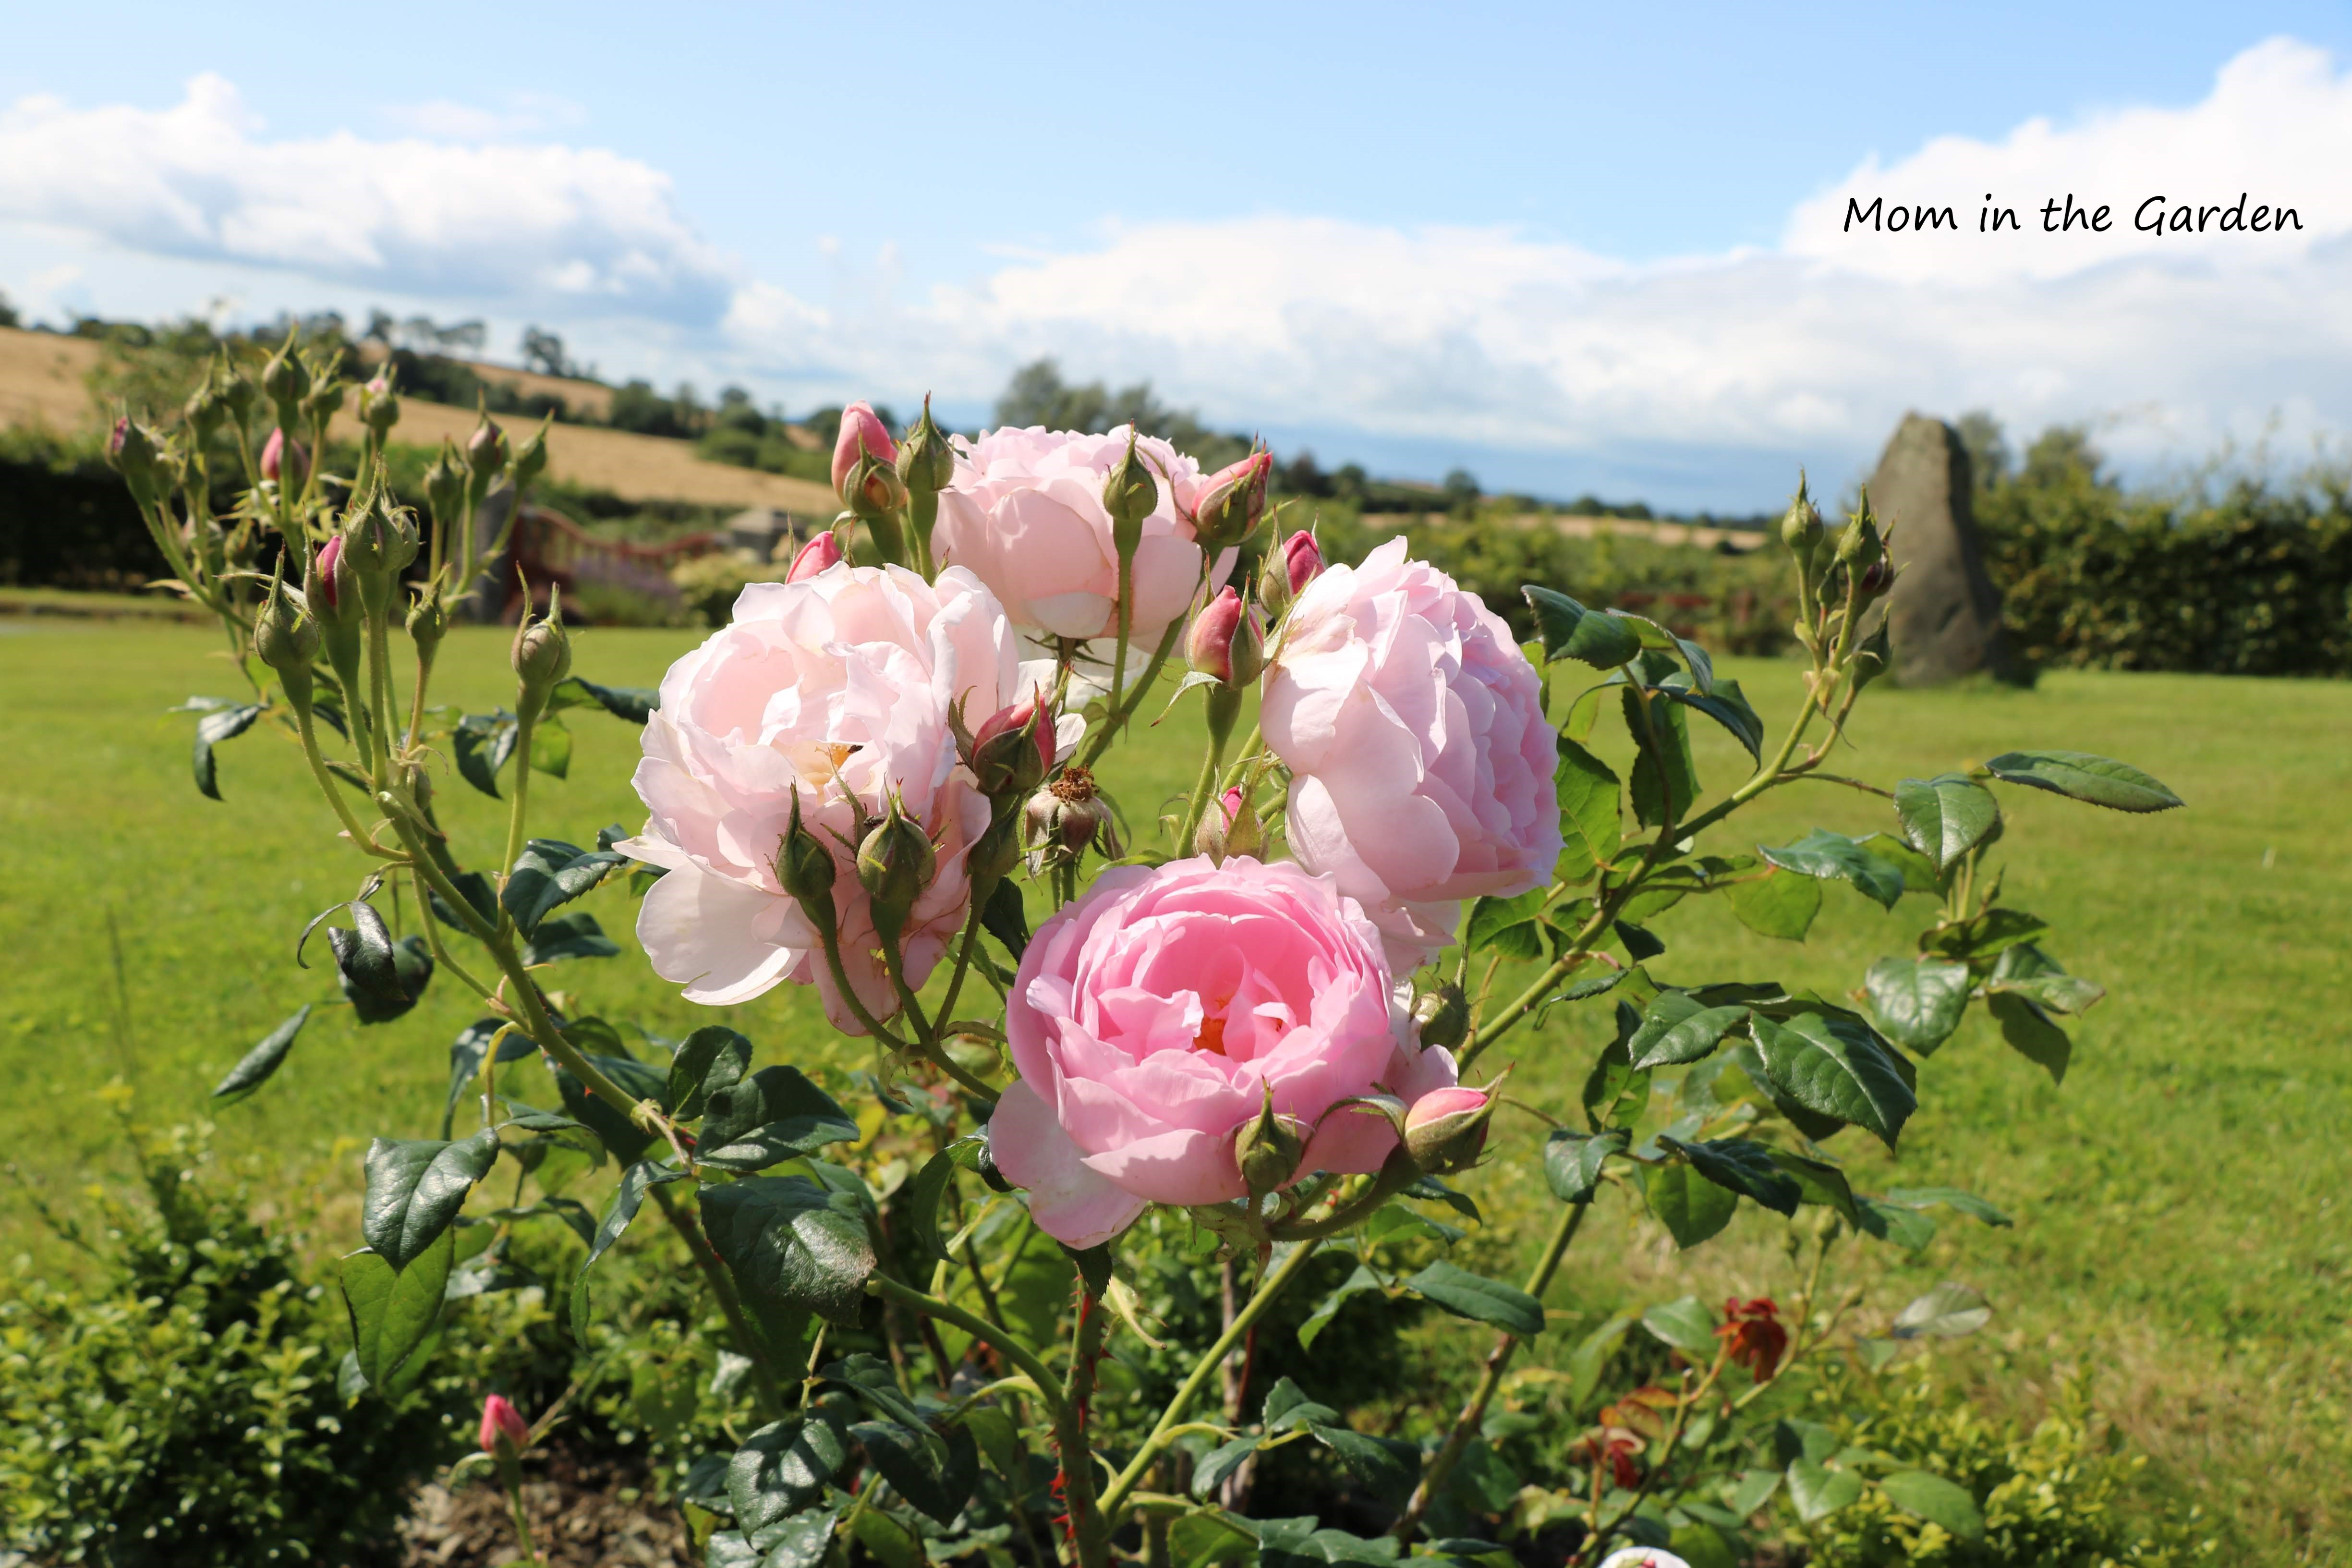 Light Pink David Austin Roses in August